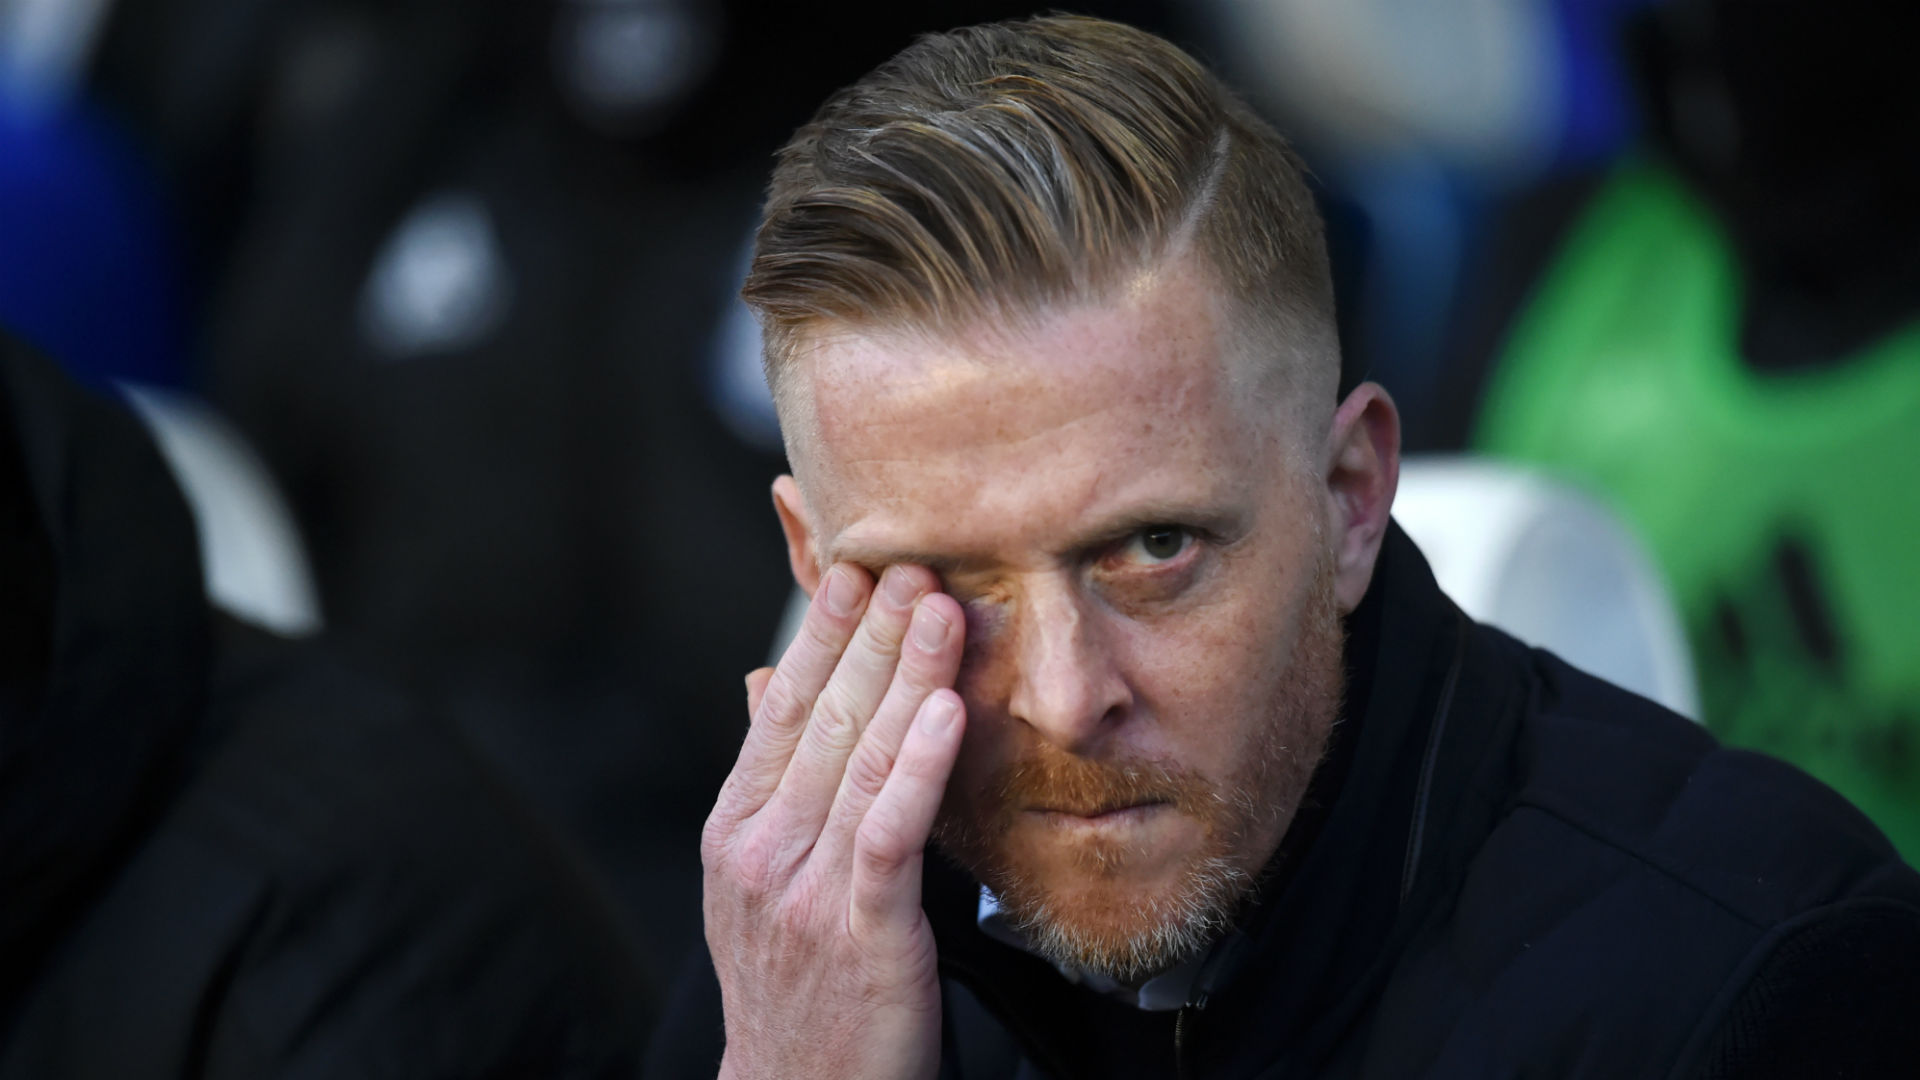 Birmingham sack Monk to protect 'long-term interests'